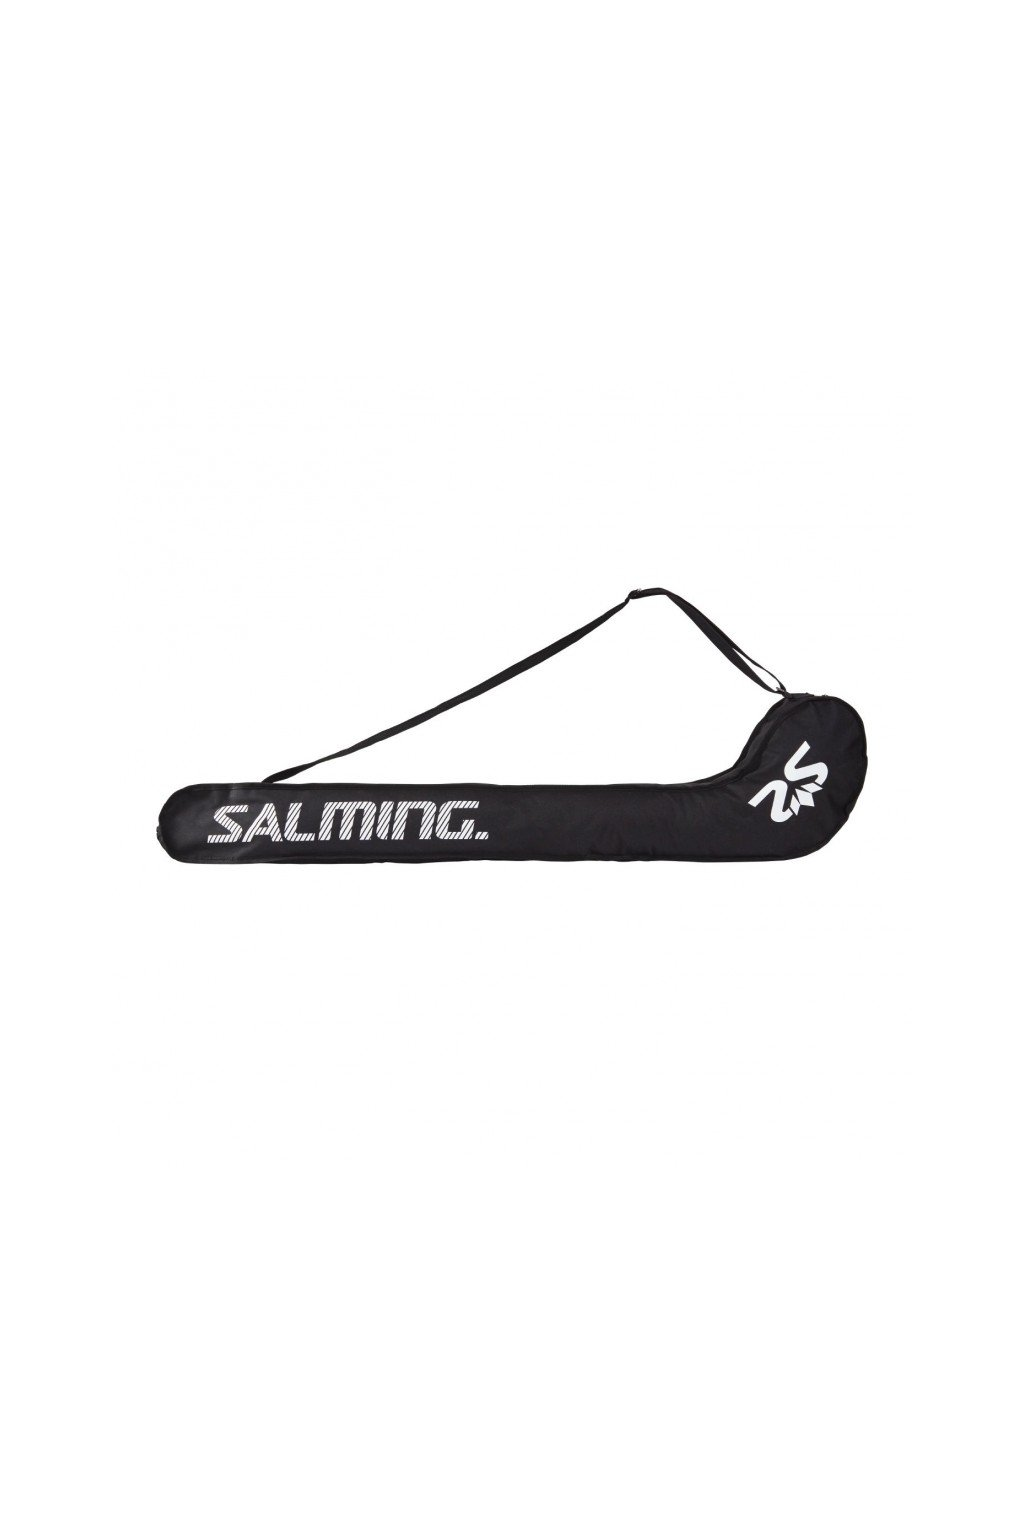 salming tour stickbag sr black